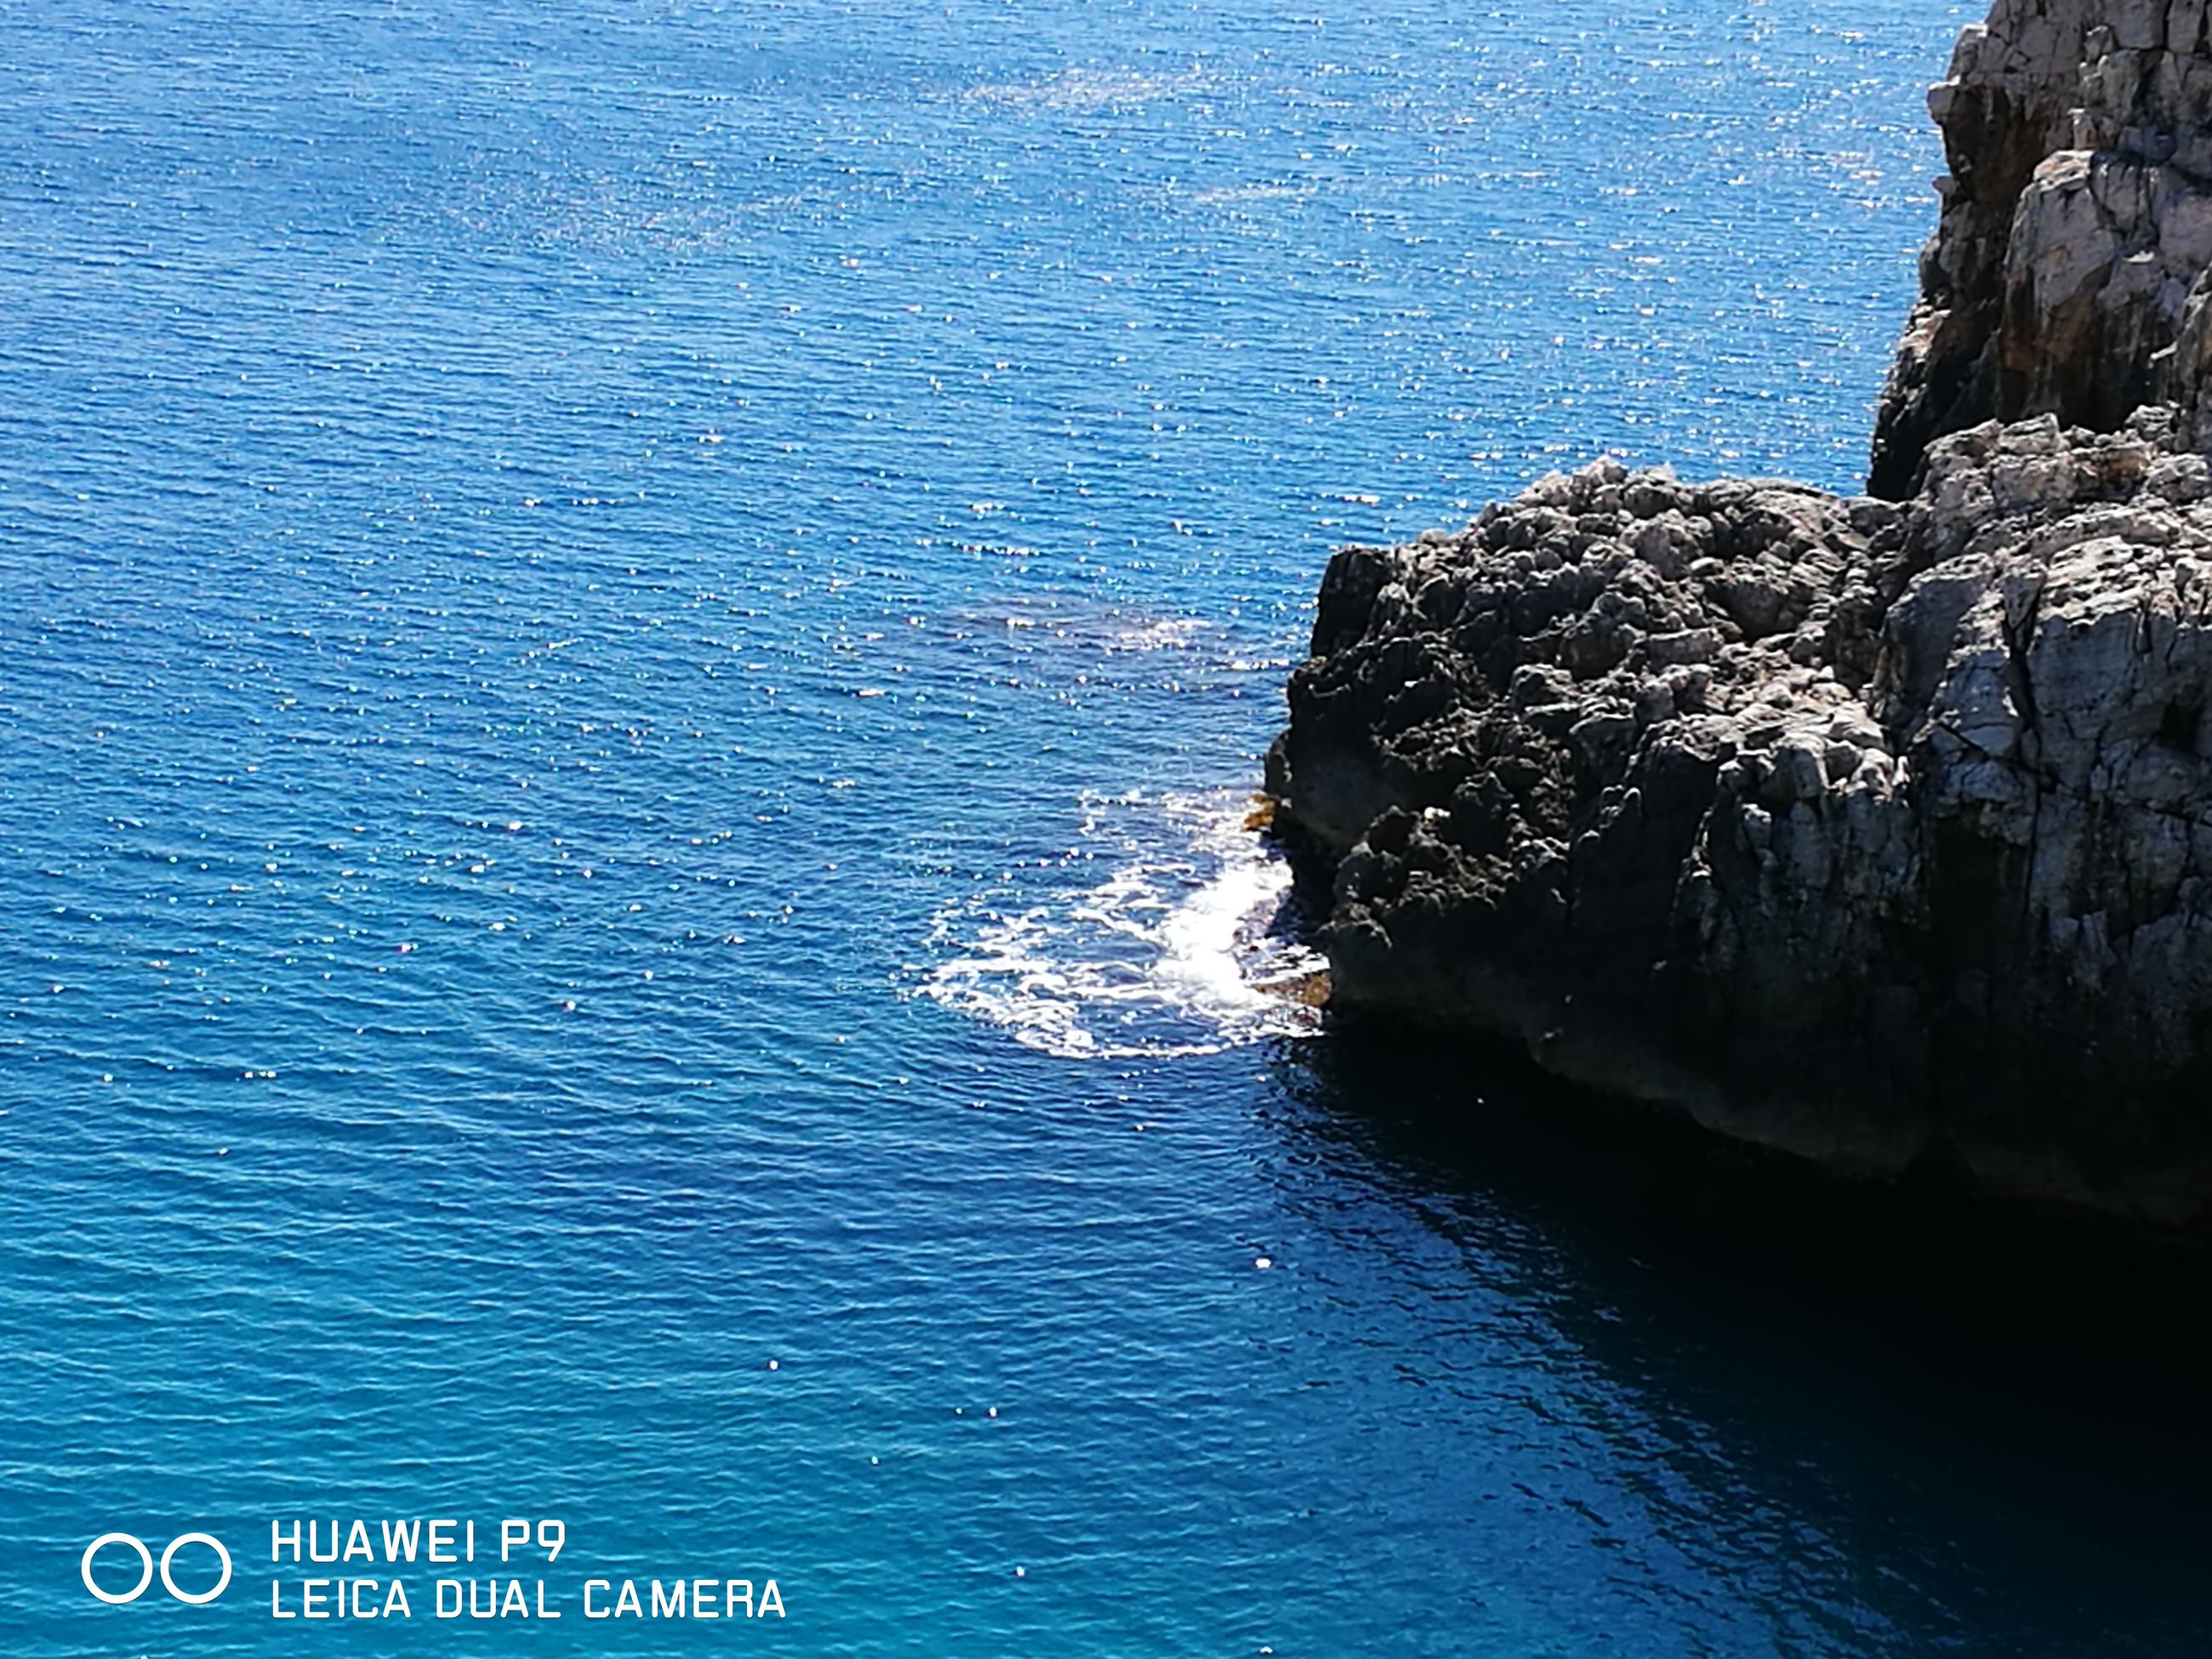 blue, sea, nature, water, beauty in nature, no people, wave, outdoors, scenics, day, sky, motion, close-up